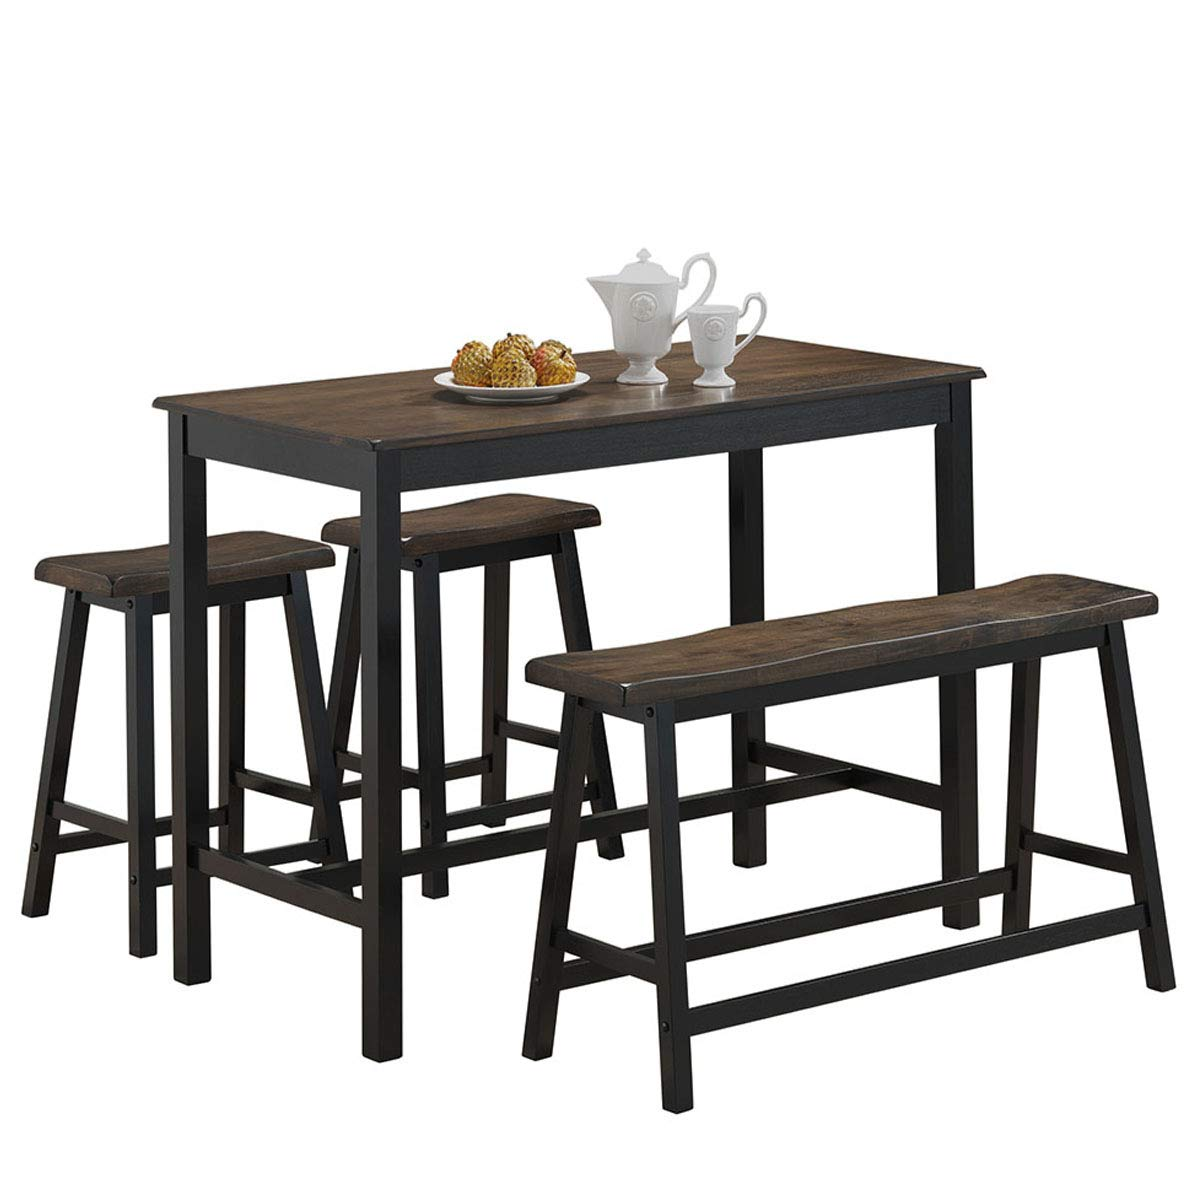 COSTWAY 4-Piece Solid Wood Dining Table Set, Counter Height Dining Furniture with One Bench and Two Saddle Stools, Modern Style with Foot Pads, Ideal for Home, Kitchen, Living Room (Gray & Brown)